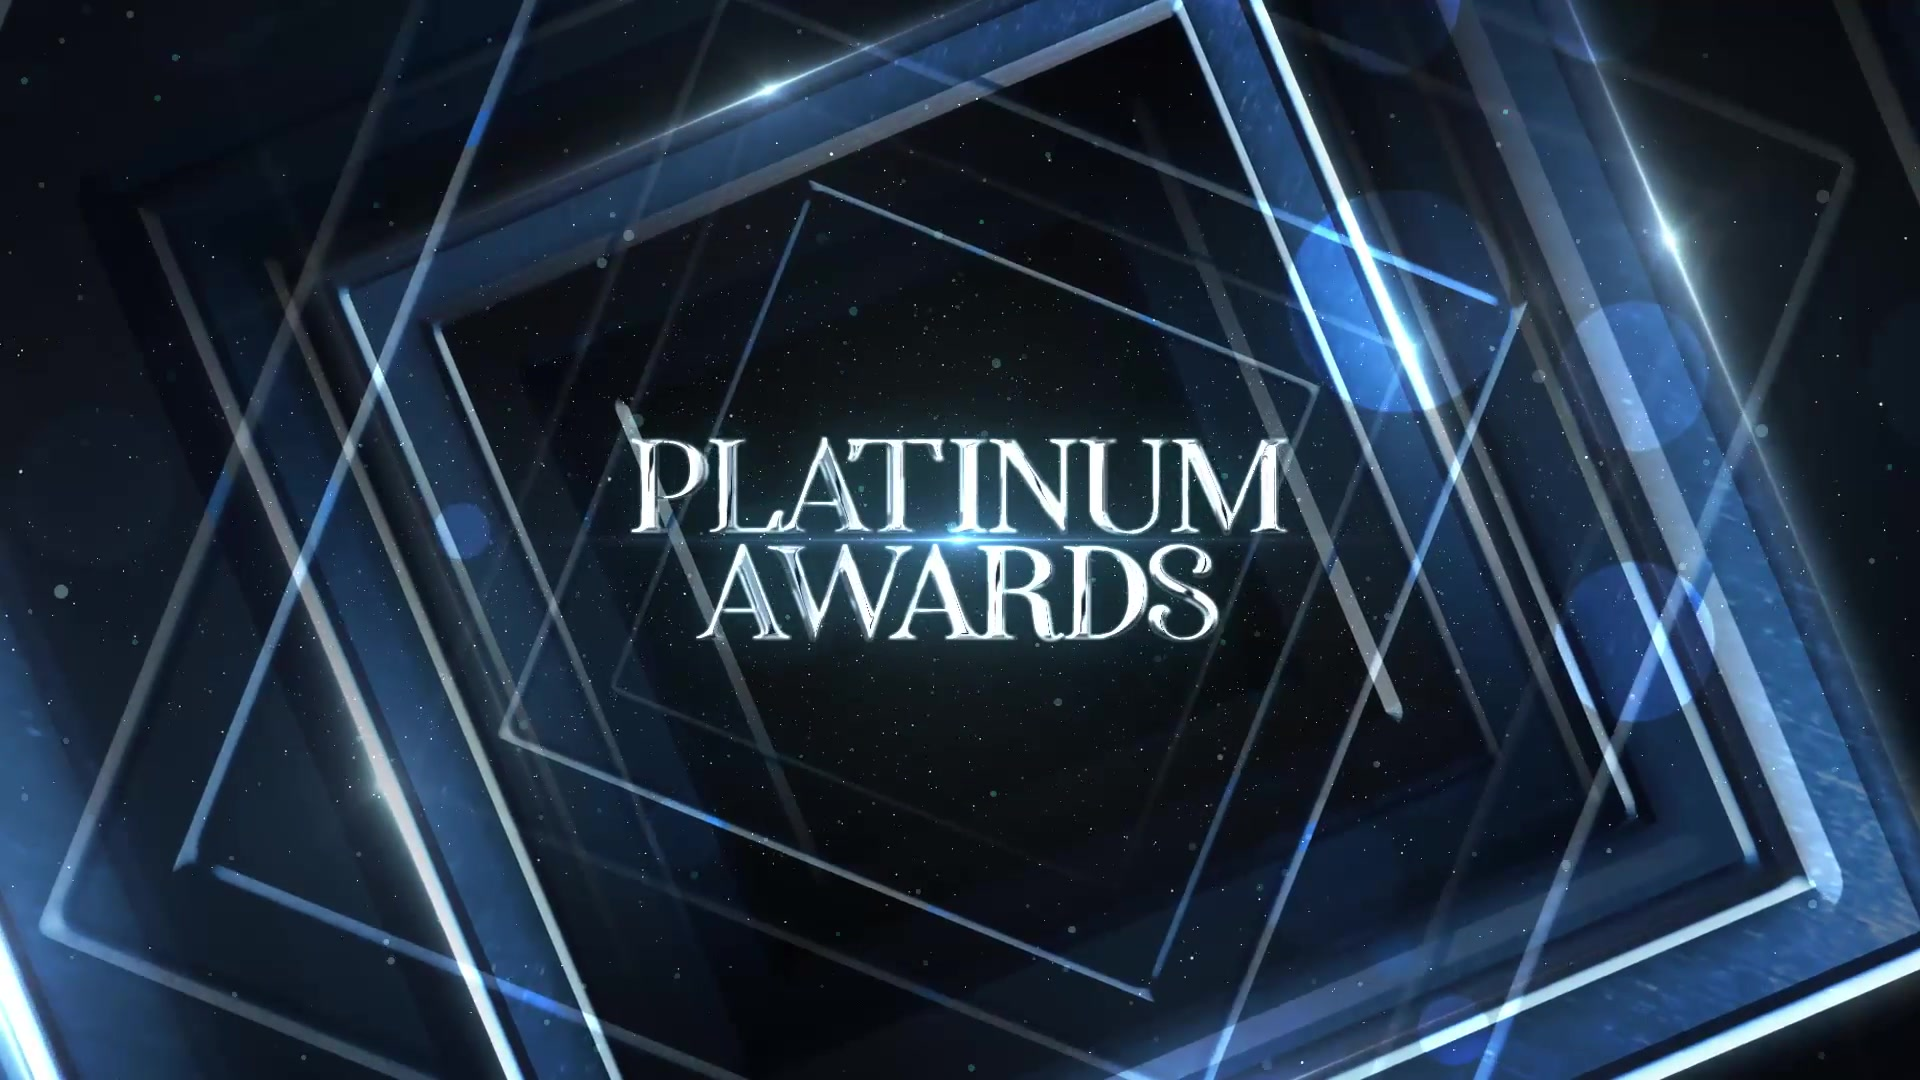 Platinum Awards Videohive 24999798 After Effects Image 10